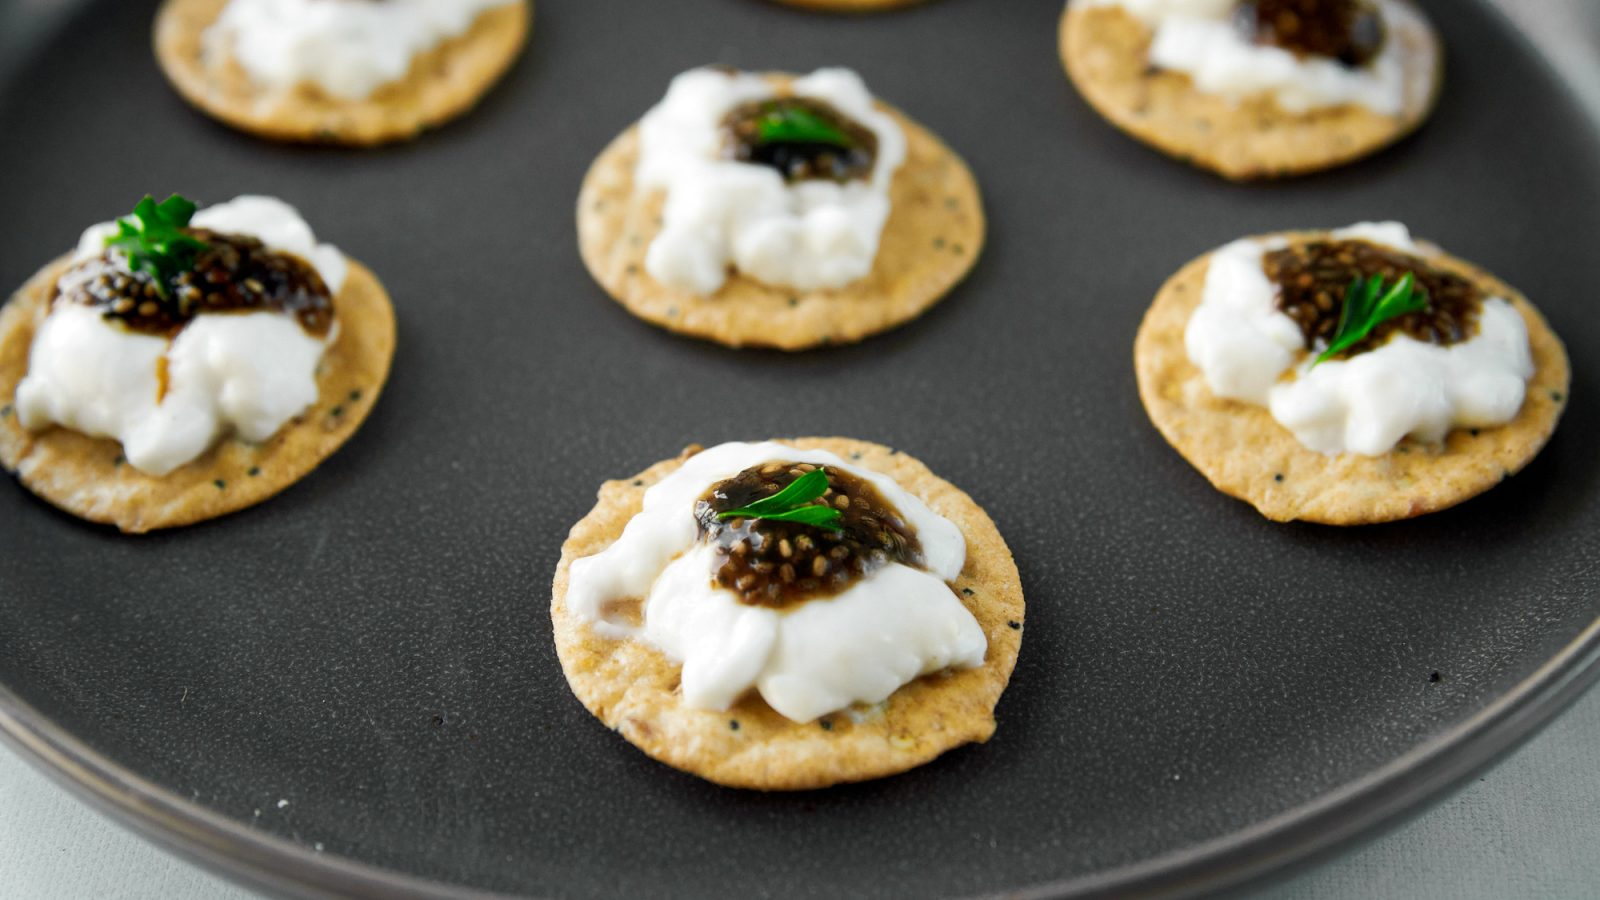 crackers topped with vegan caviar on a plate